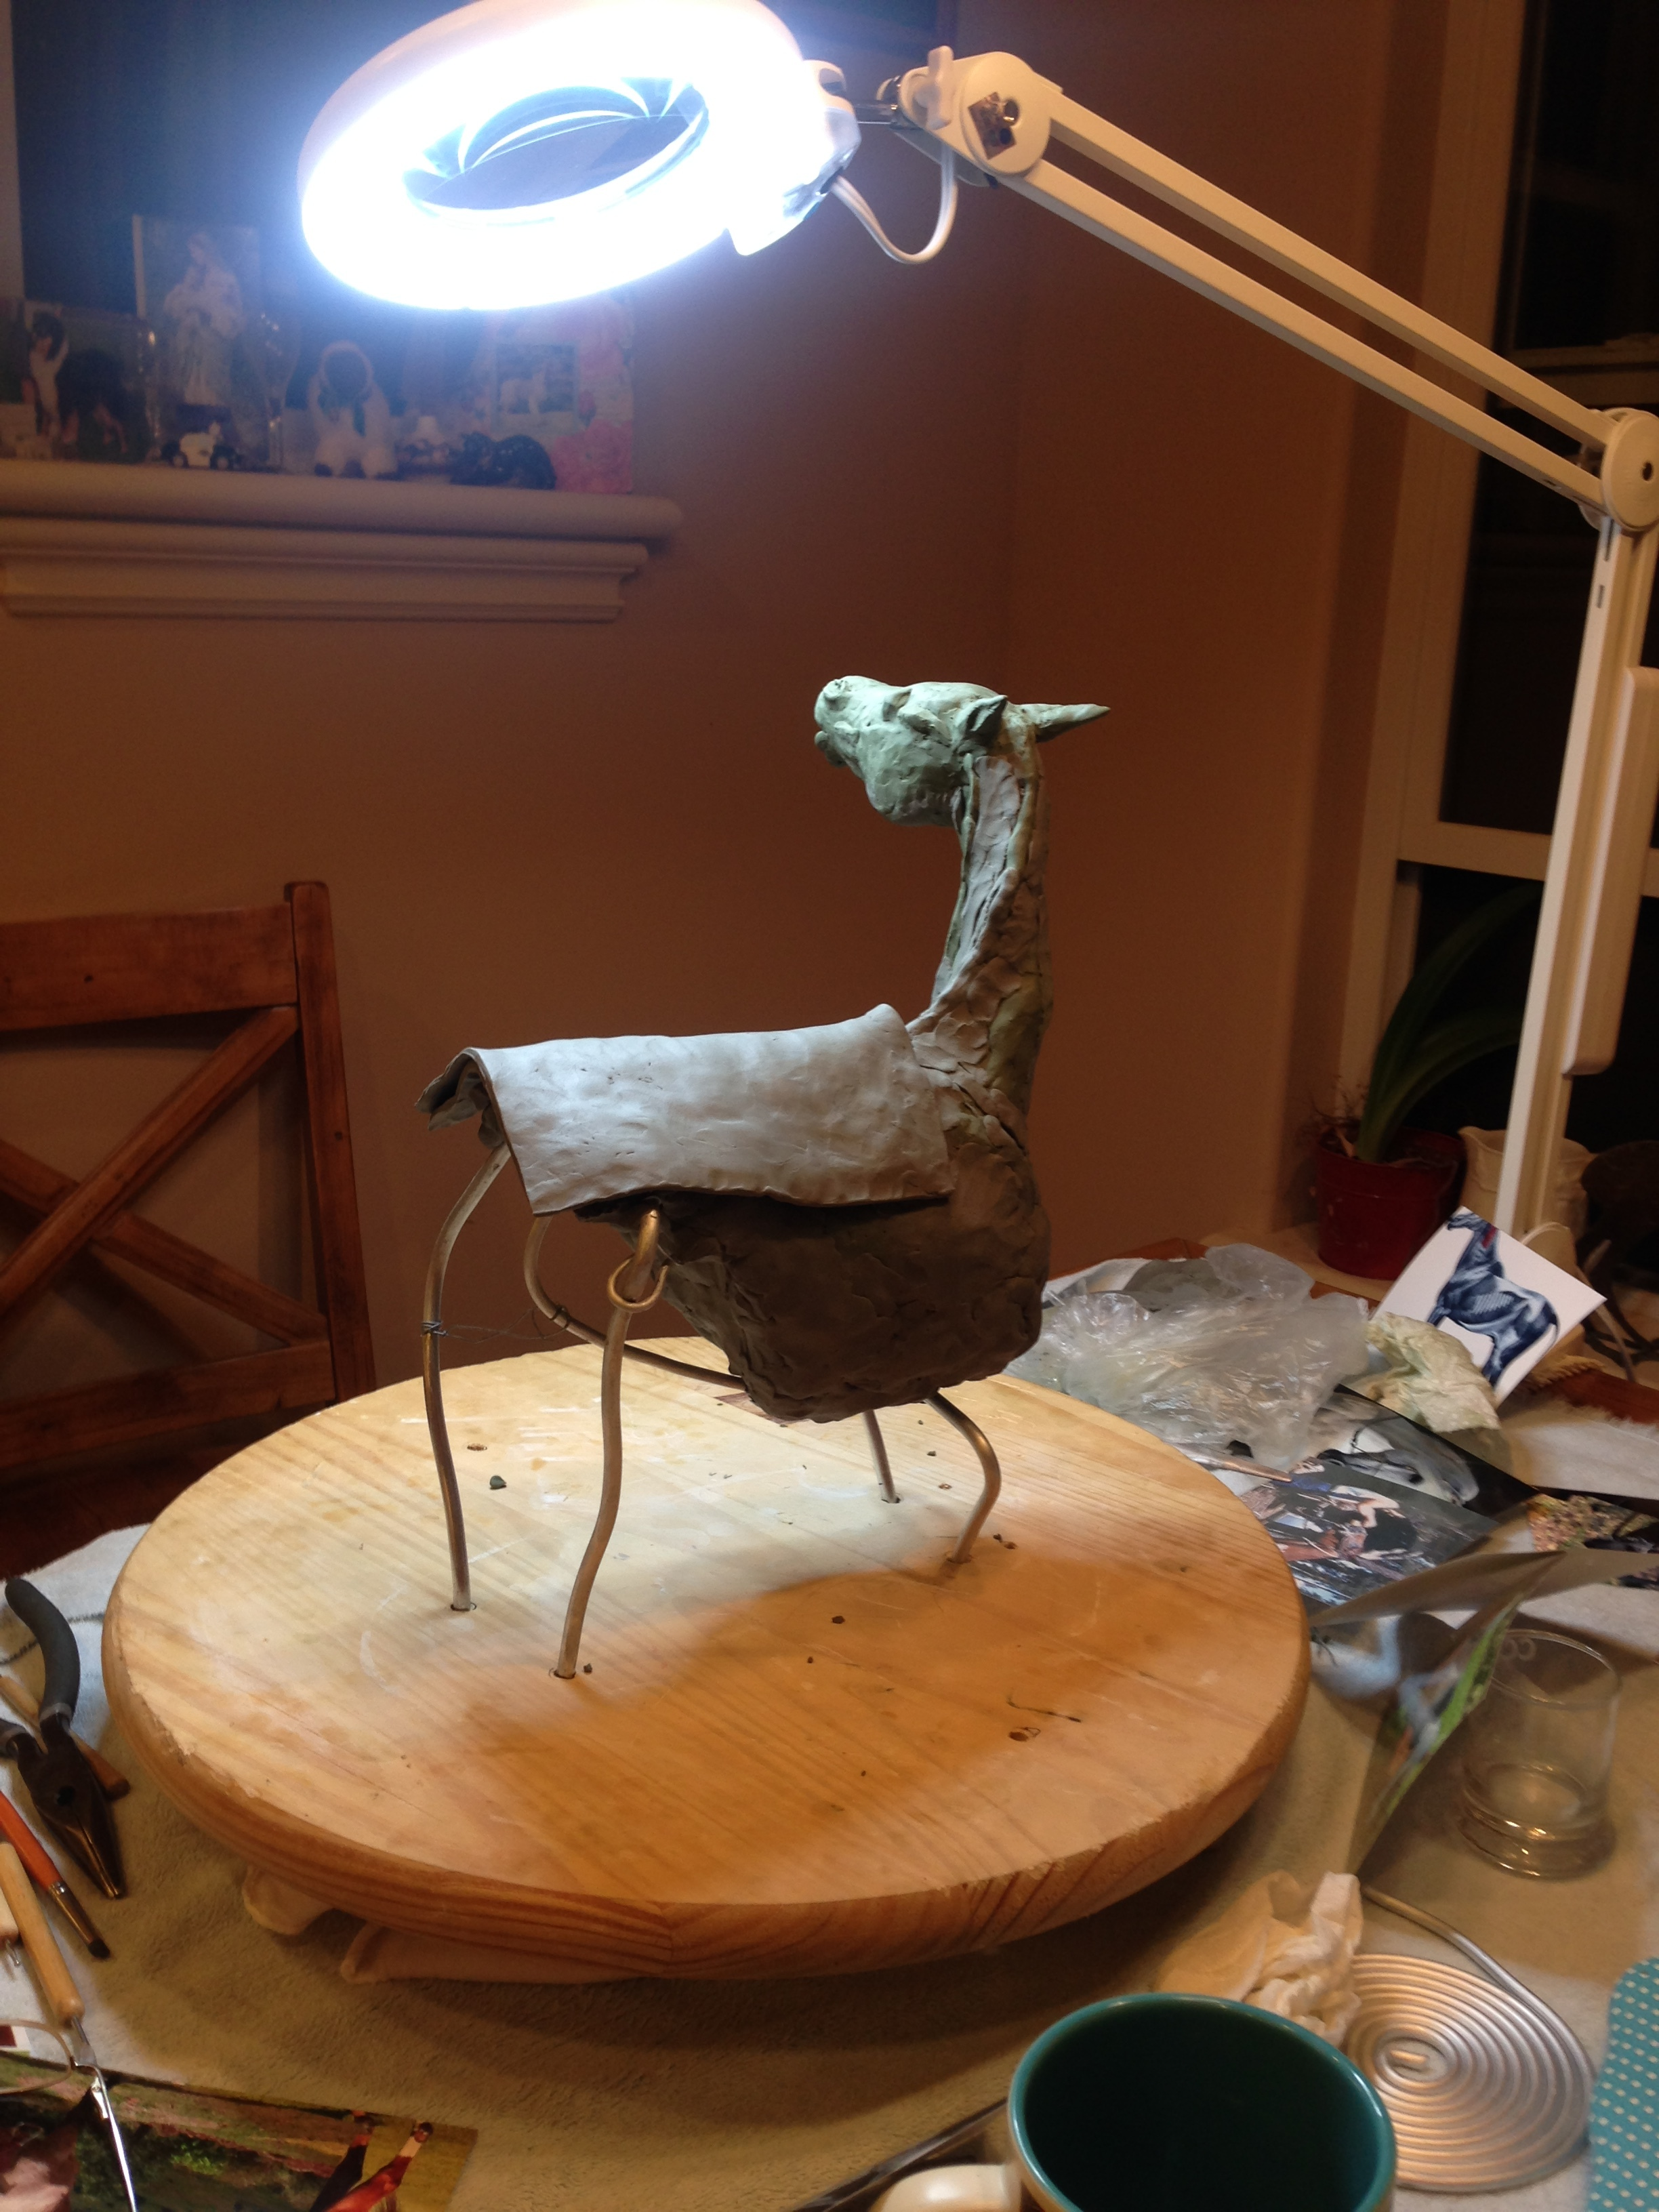 Figuring out the saddle blanket and also how the sculpture would be designed. I wanted the detail there, but when someone looked from another angle they would see pleasing lines. The underside was a work in progress.